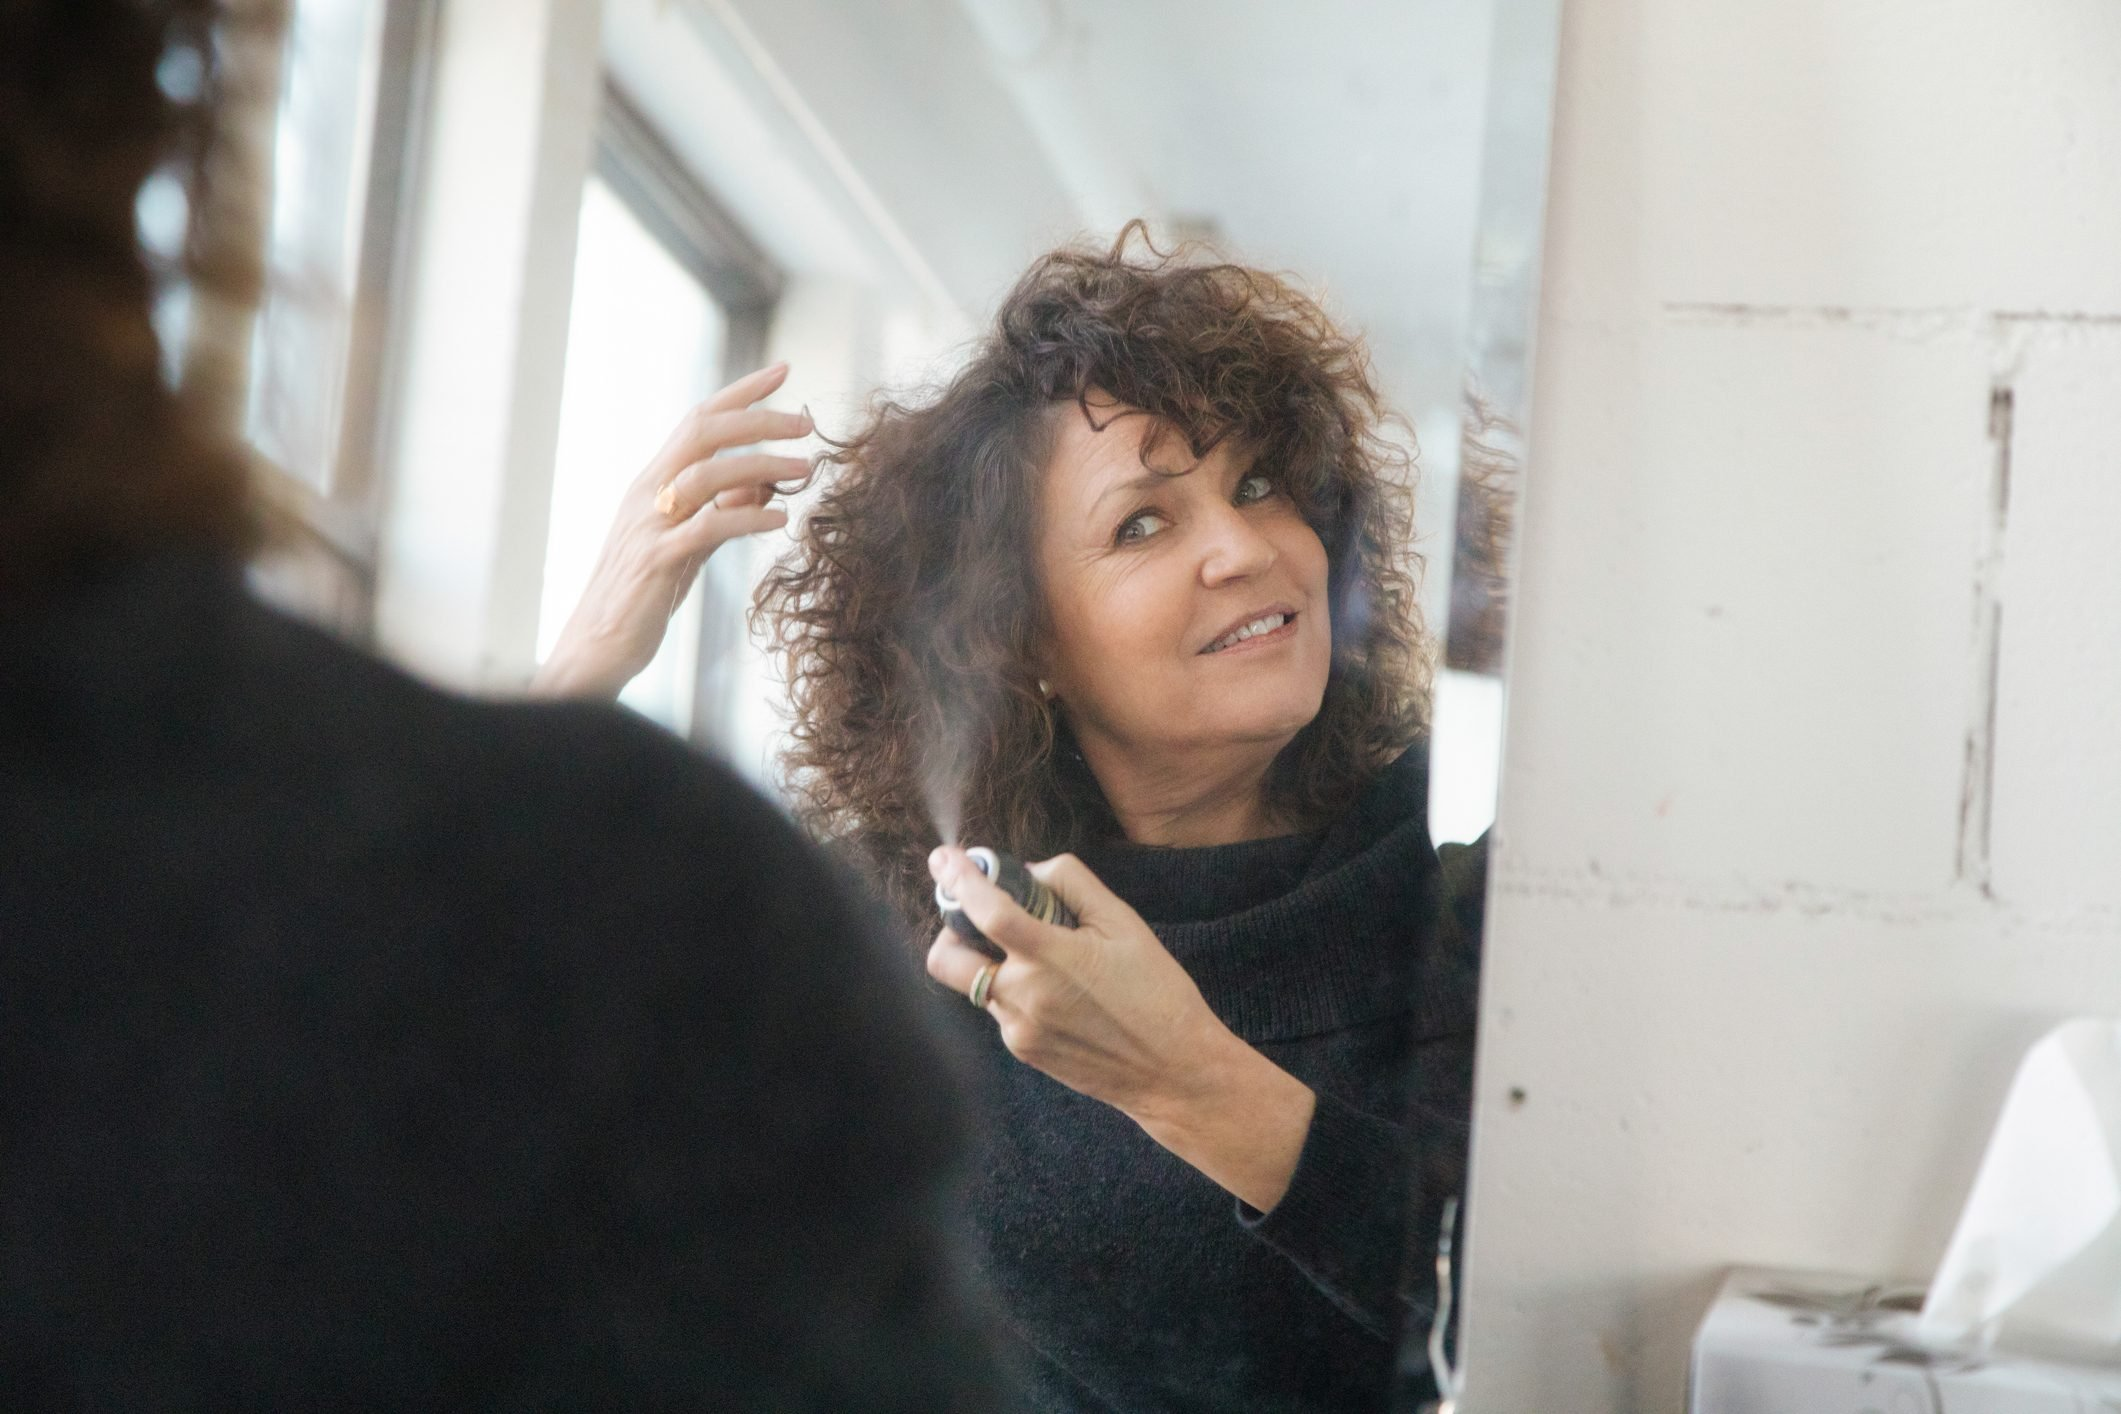 Mature woman applying hair spray in front of mirror